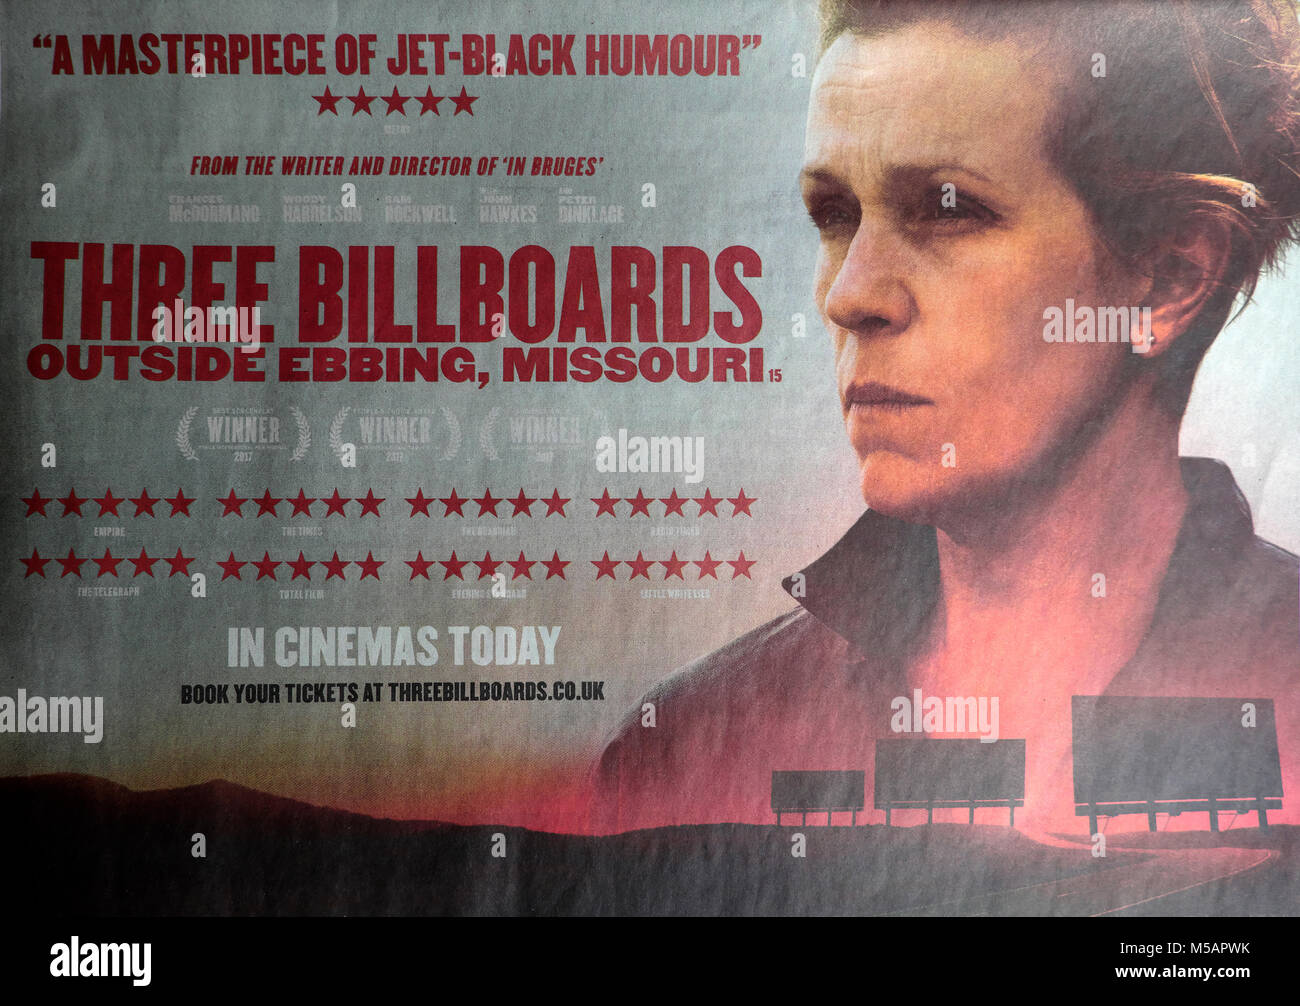 Three Billboards Outside Ebbing, Missouri Oscar Award Winning movie advertisement in a UK newspaper with Hollywood - Stock Image